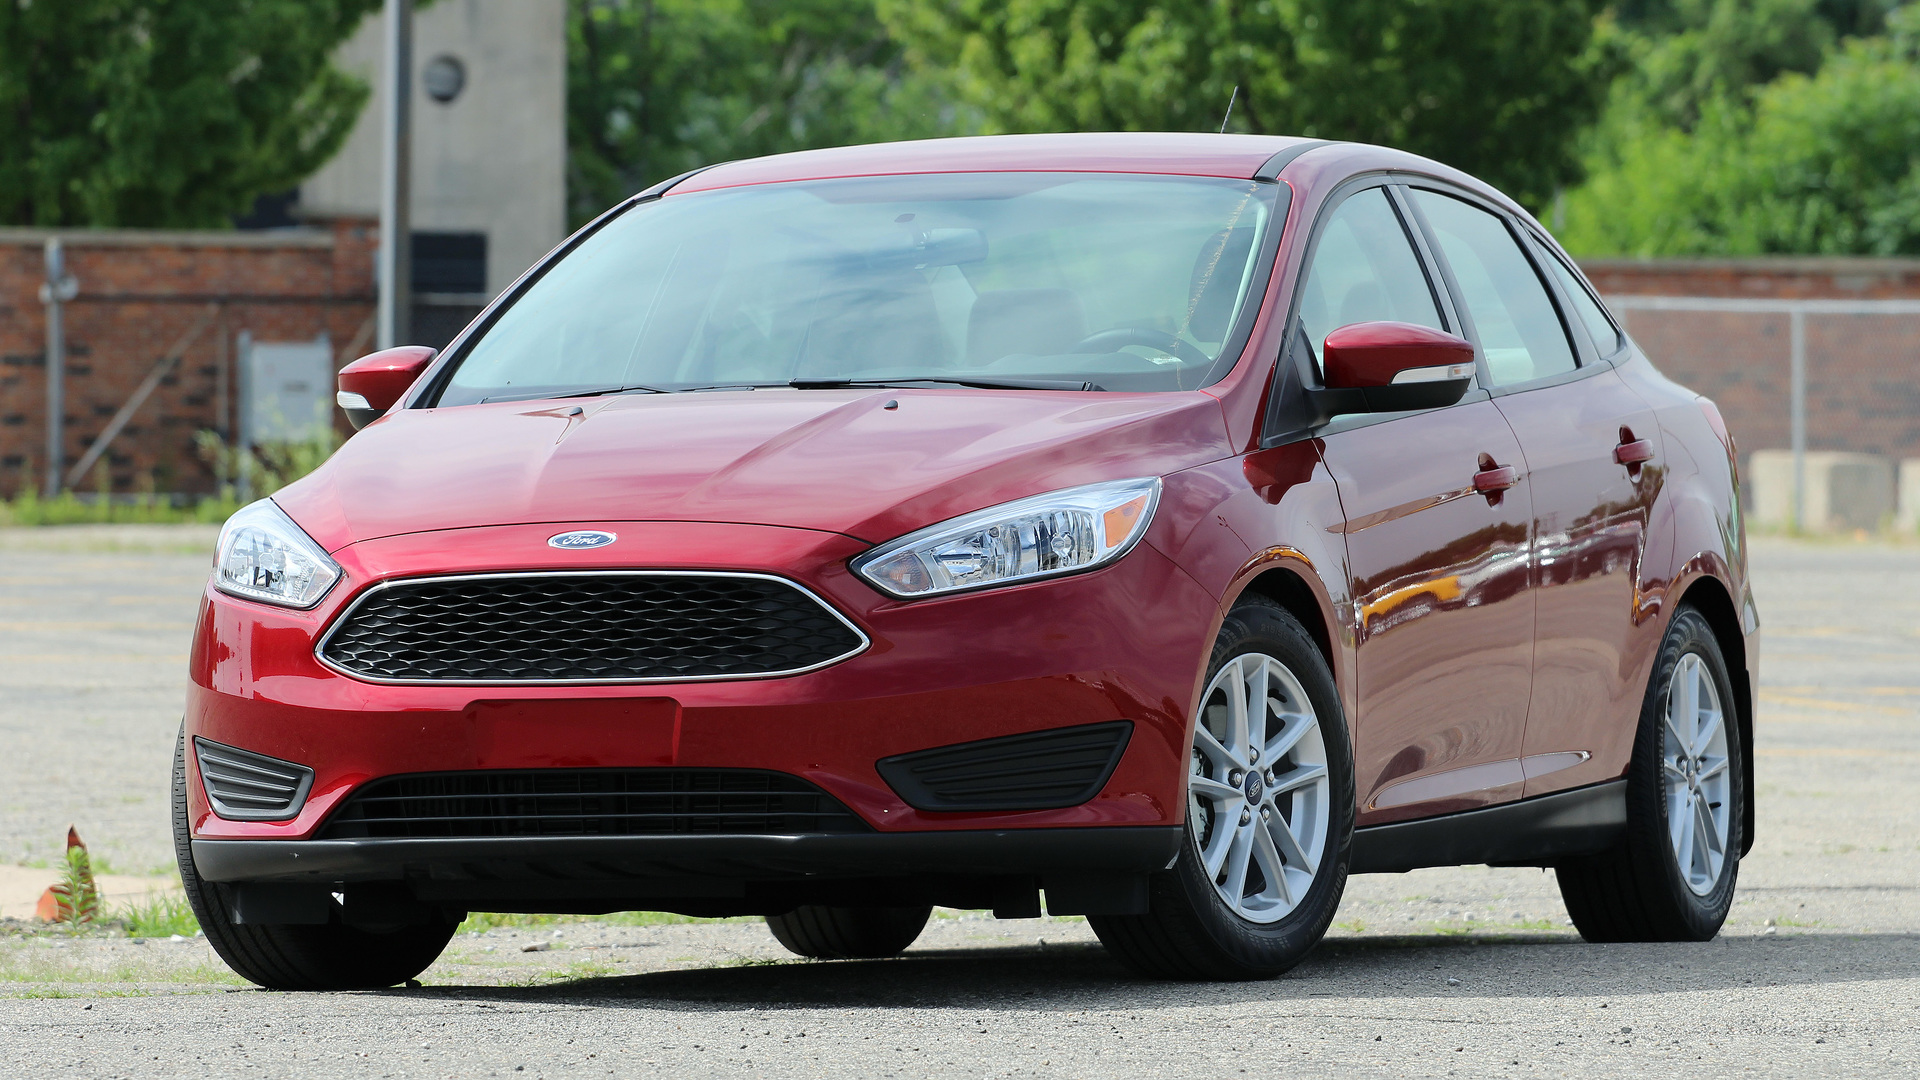 Ford Focus Production For US Stopping For One Year